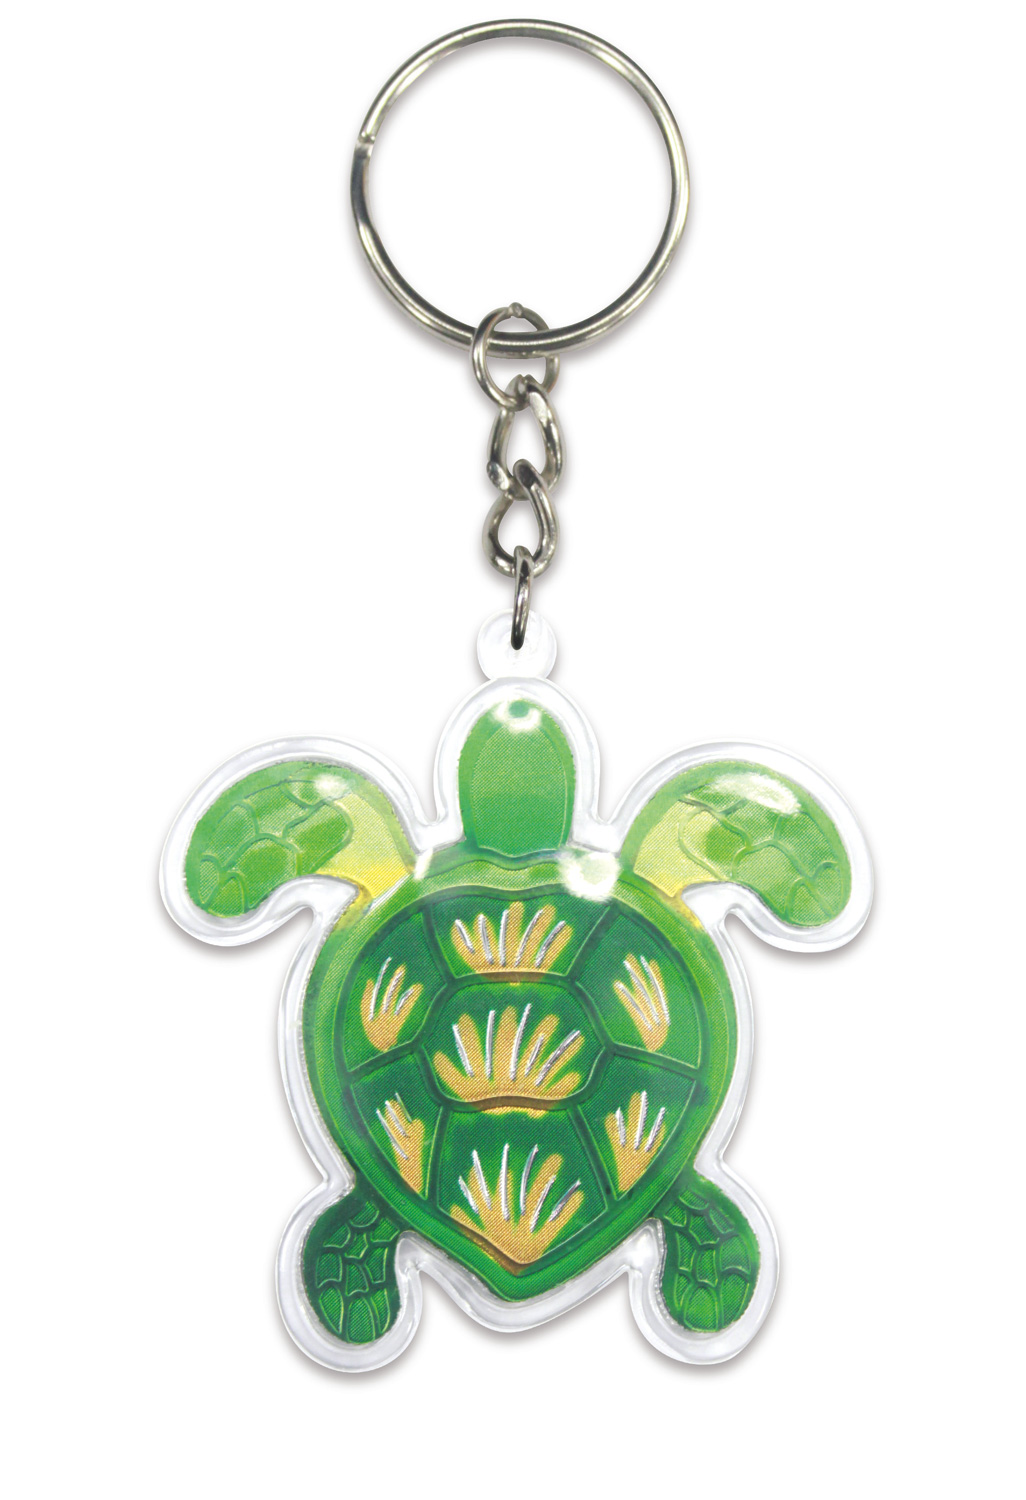 Die Cut Foil Keychain - Swimming Honu